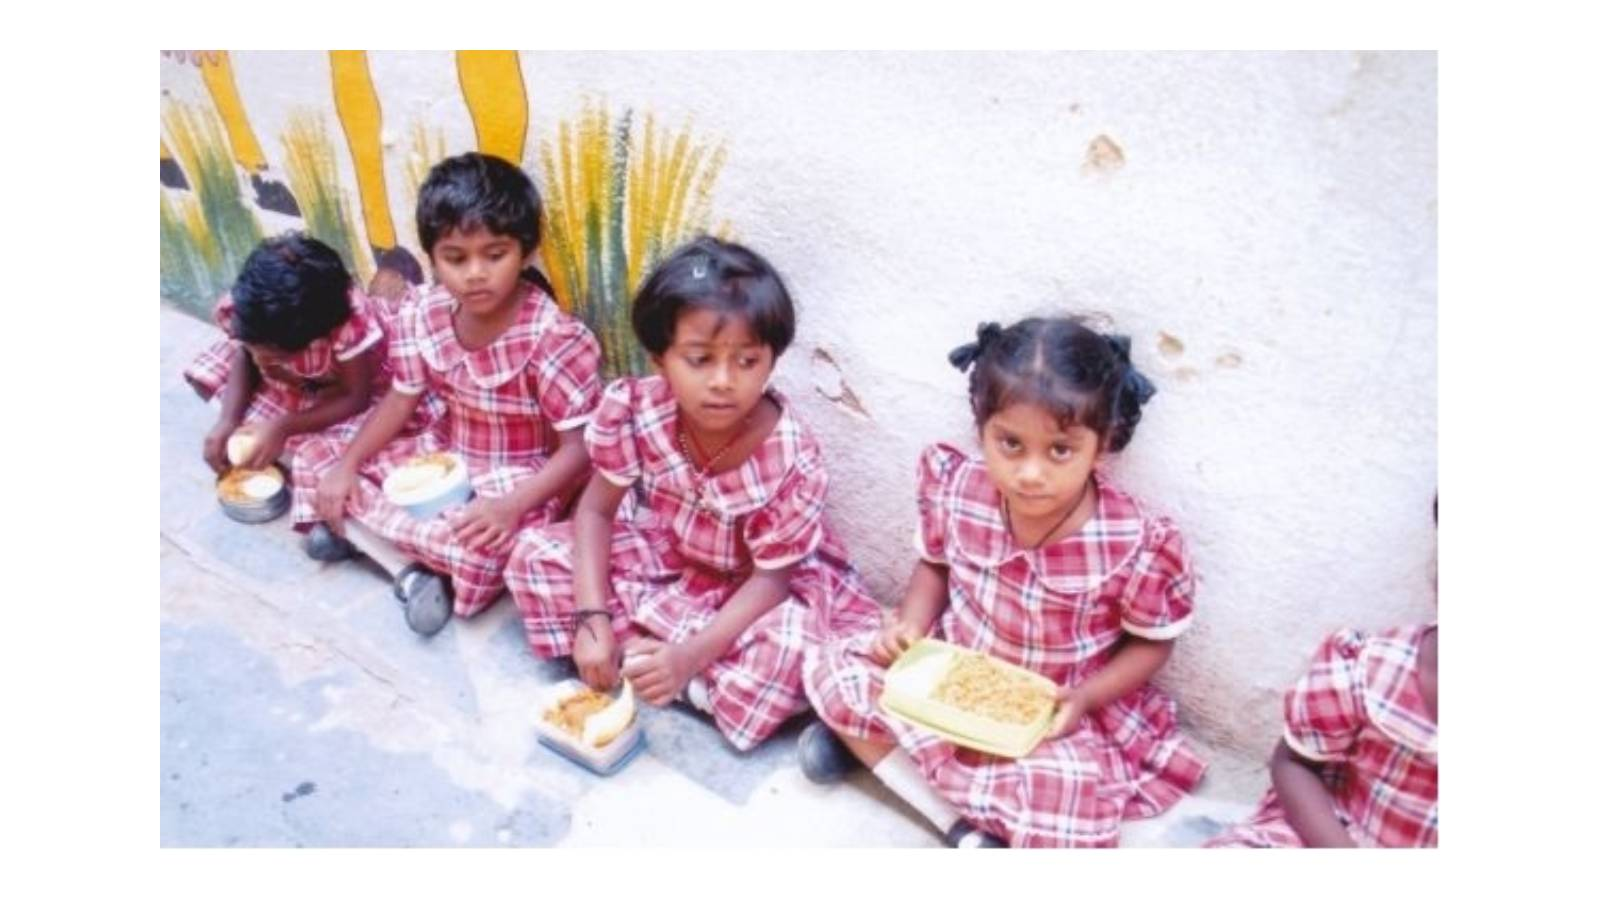 St. Euphrasia's Higher Primary School, the noon meal is given to the students on each working day by Maria Seva Sangha. In this school children hail from a poor socio-economic background.